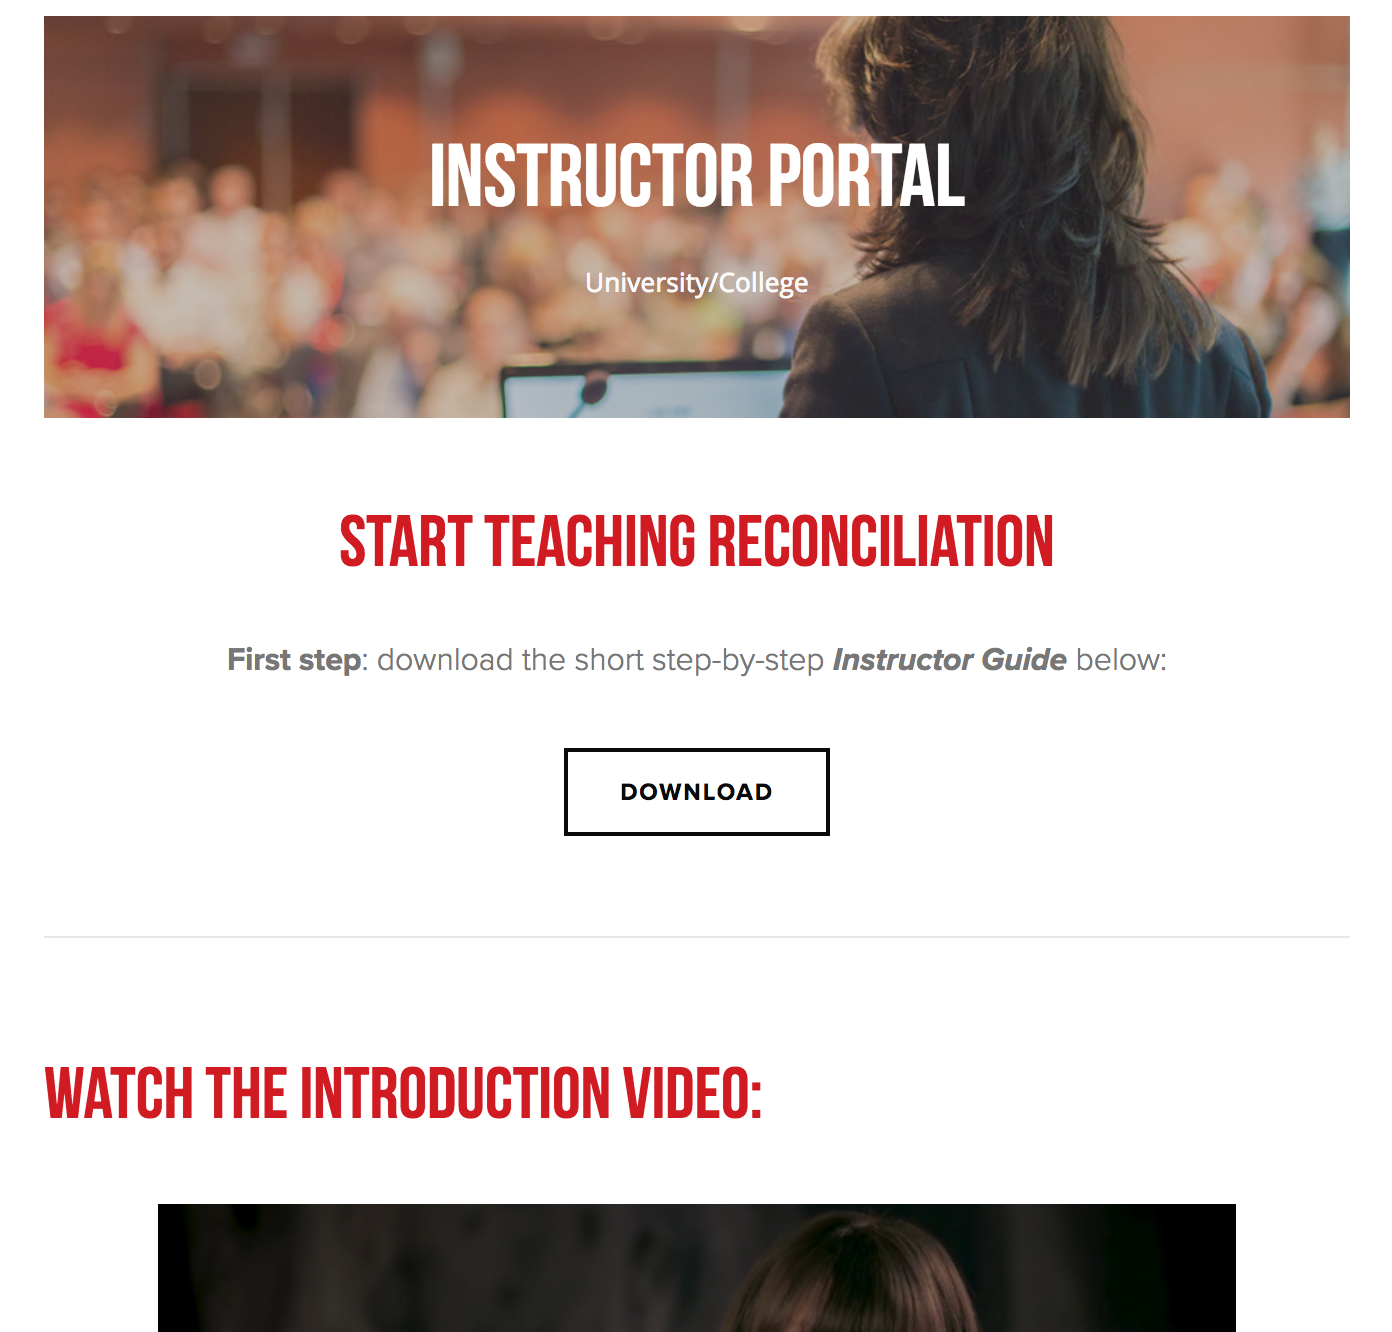 Instructor Portal - Instructors will have access to their own online Portal filled with all the unit materials such as the unit Guide, powerpoints, links to the film and multimedia. There they will also find additional learning materials for both themselves and their students in the form of videos and external links.